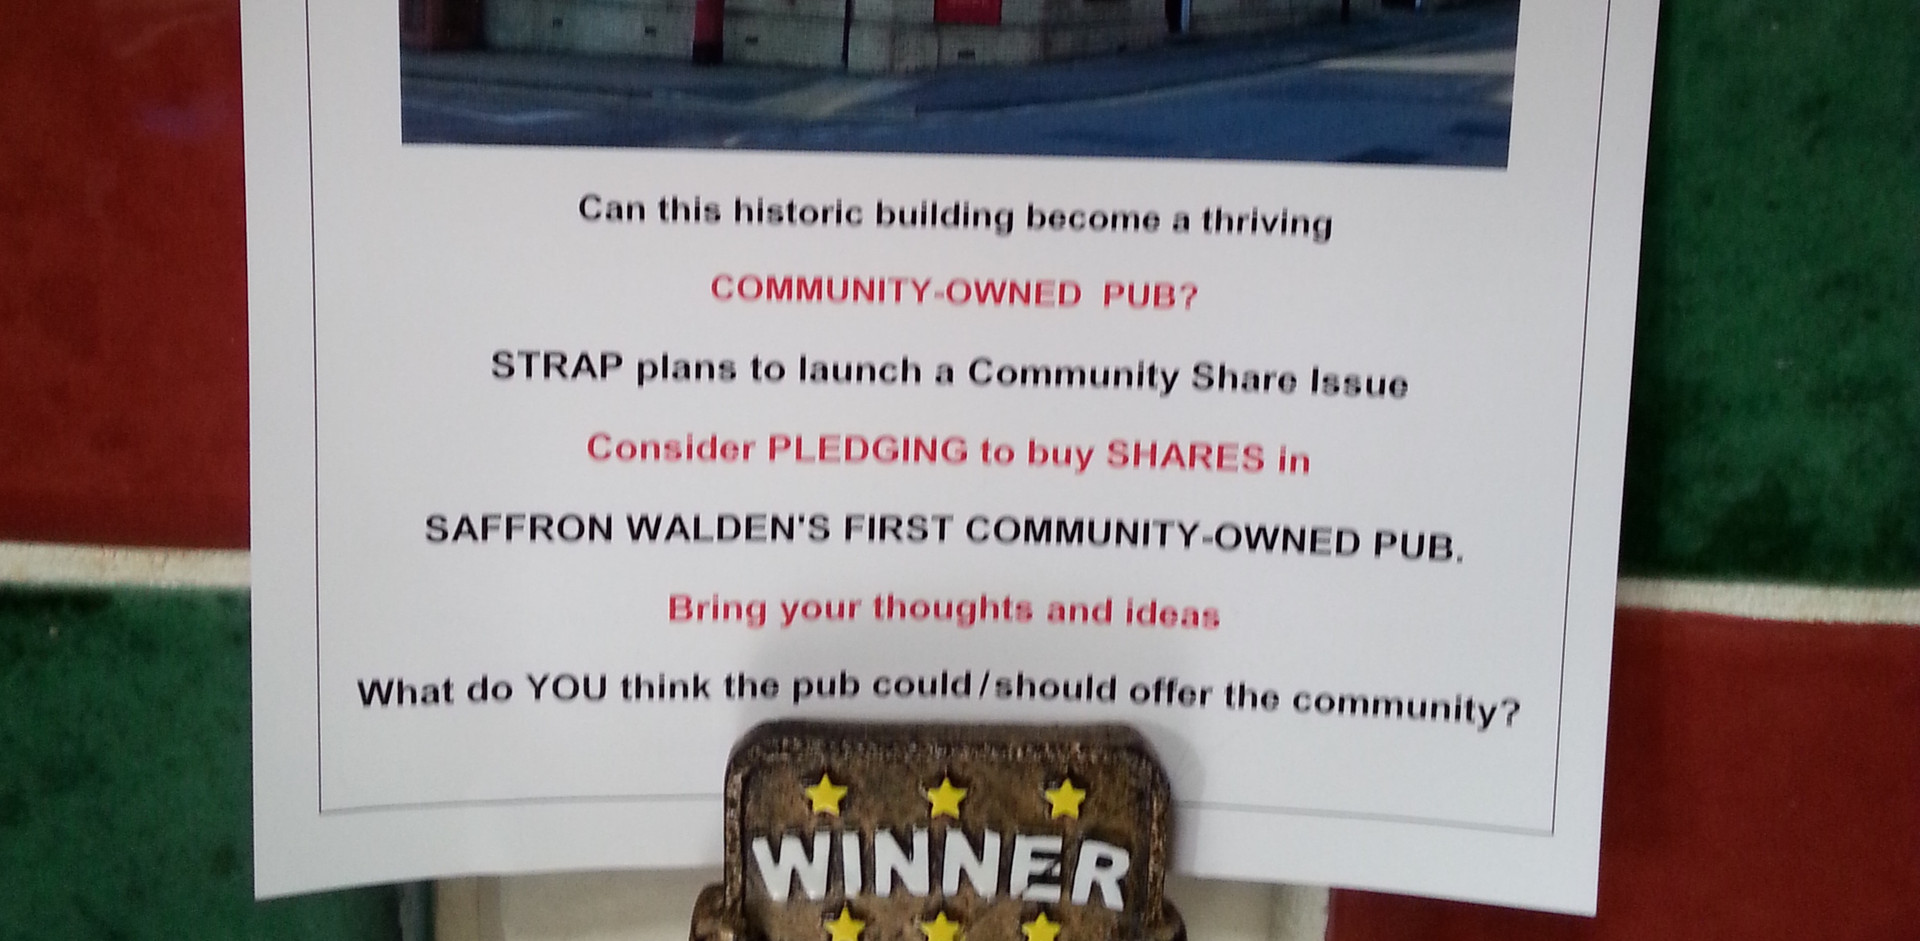 STRAP - Wiggy (rightly) supporting a community owned pub